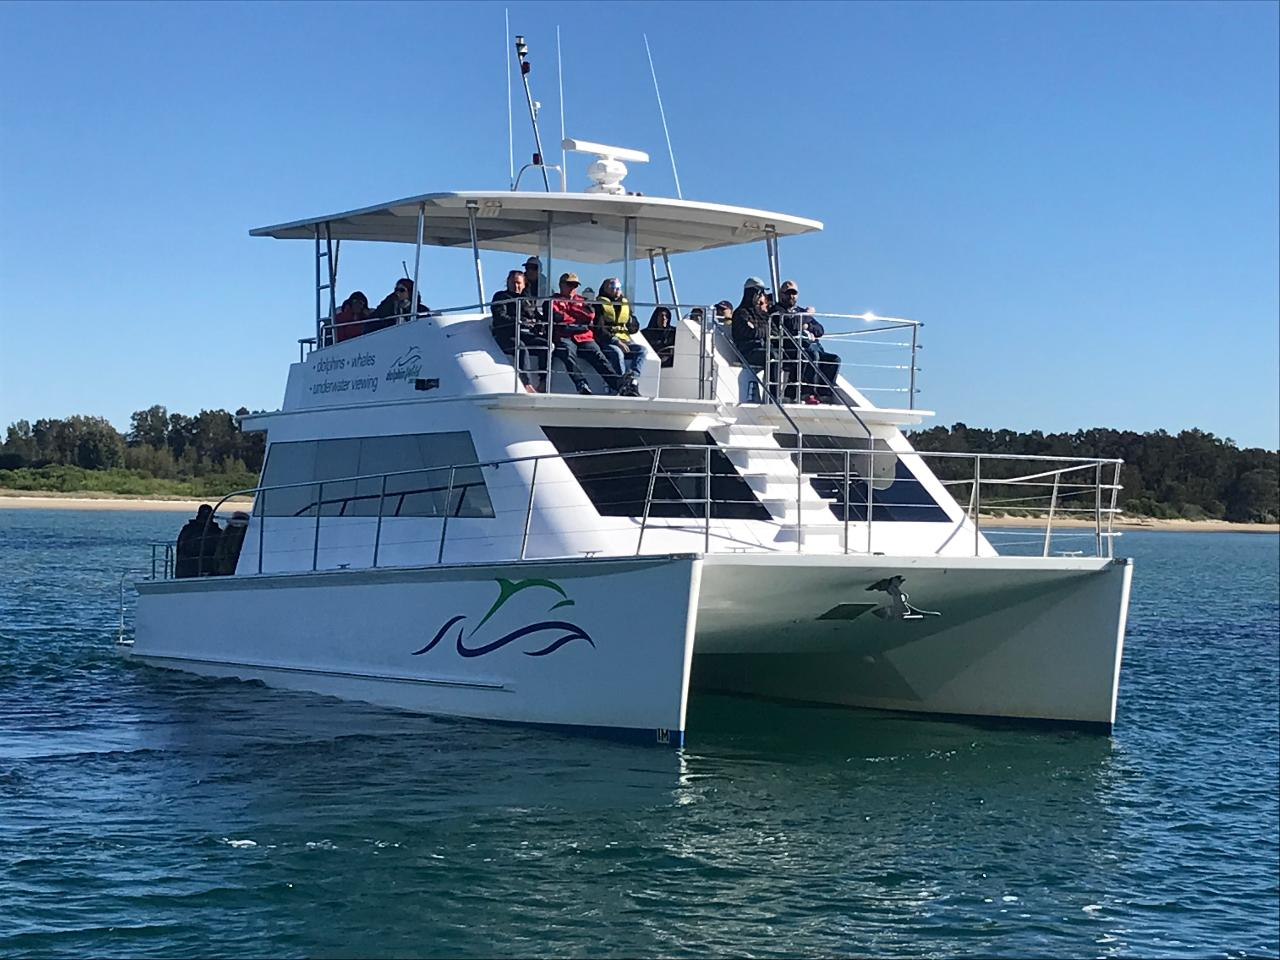 Coastline Cruise with Dolphin Spotting - Essence